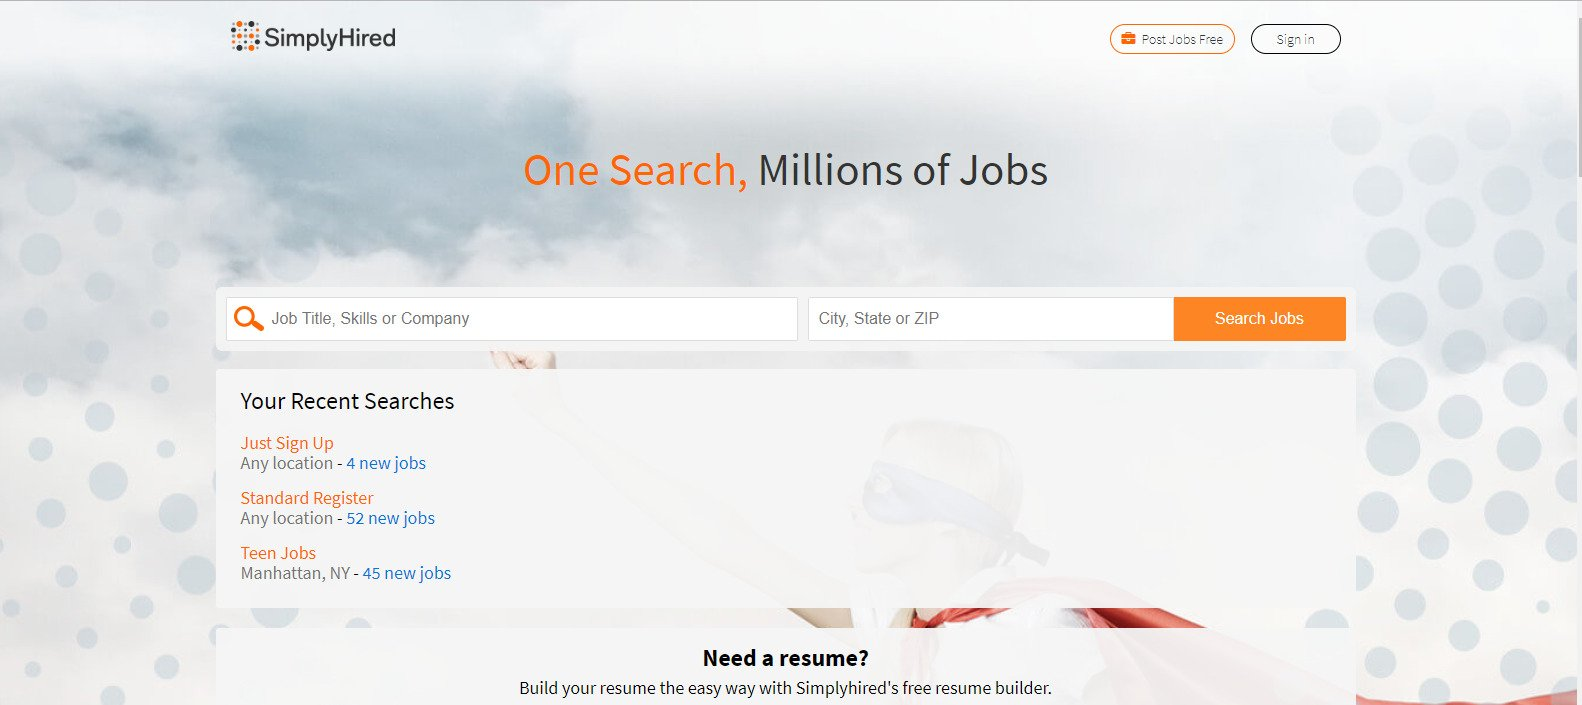 Simply Hired Login simplyhired.com and Sign up Guide